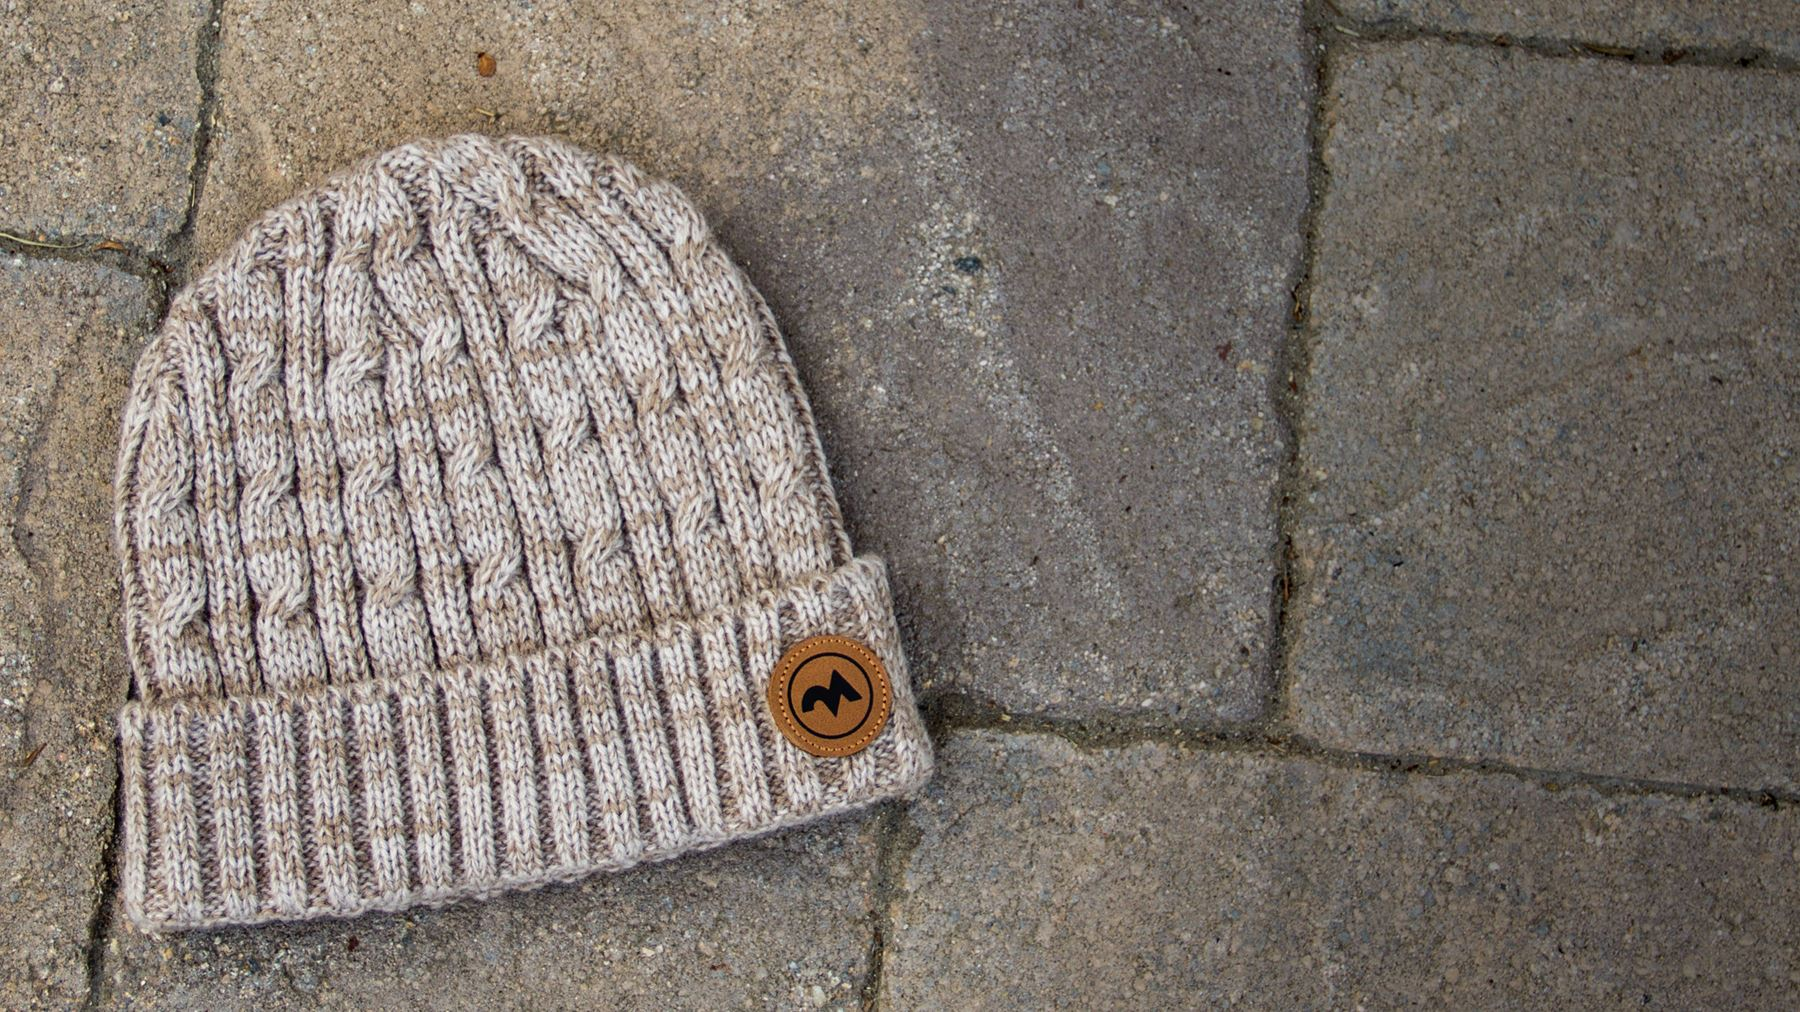 Cuffed Cable Knit hat laying on stone walkway